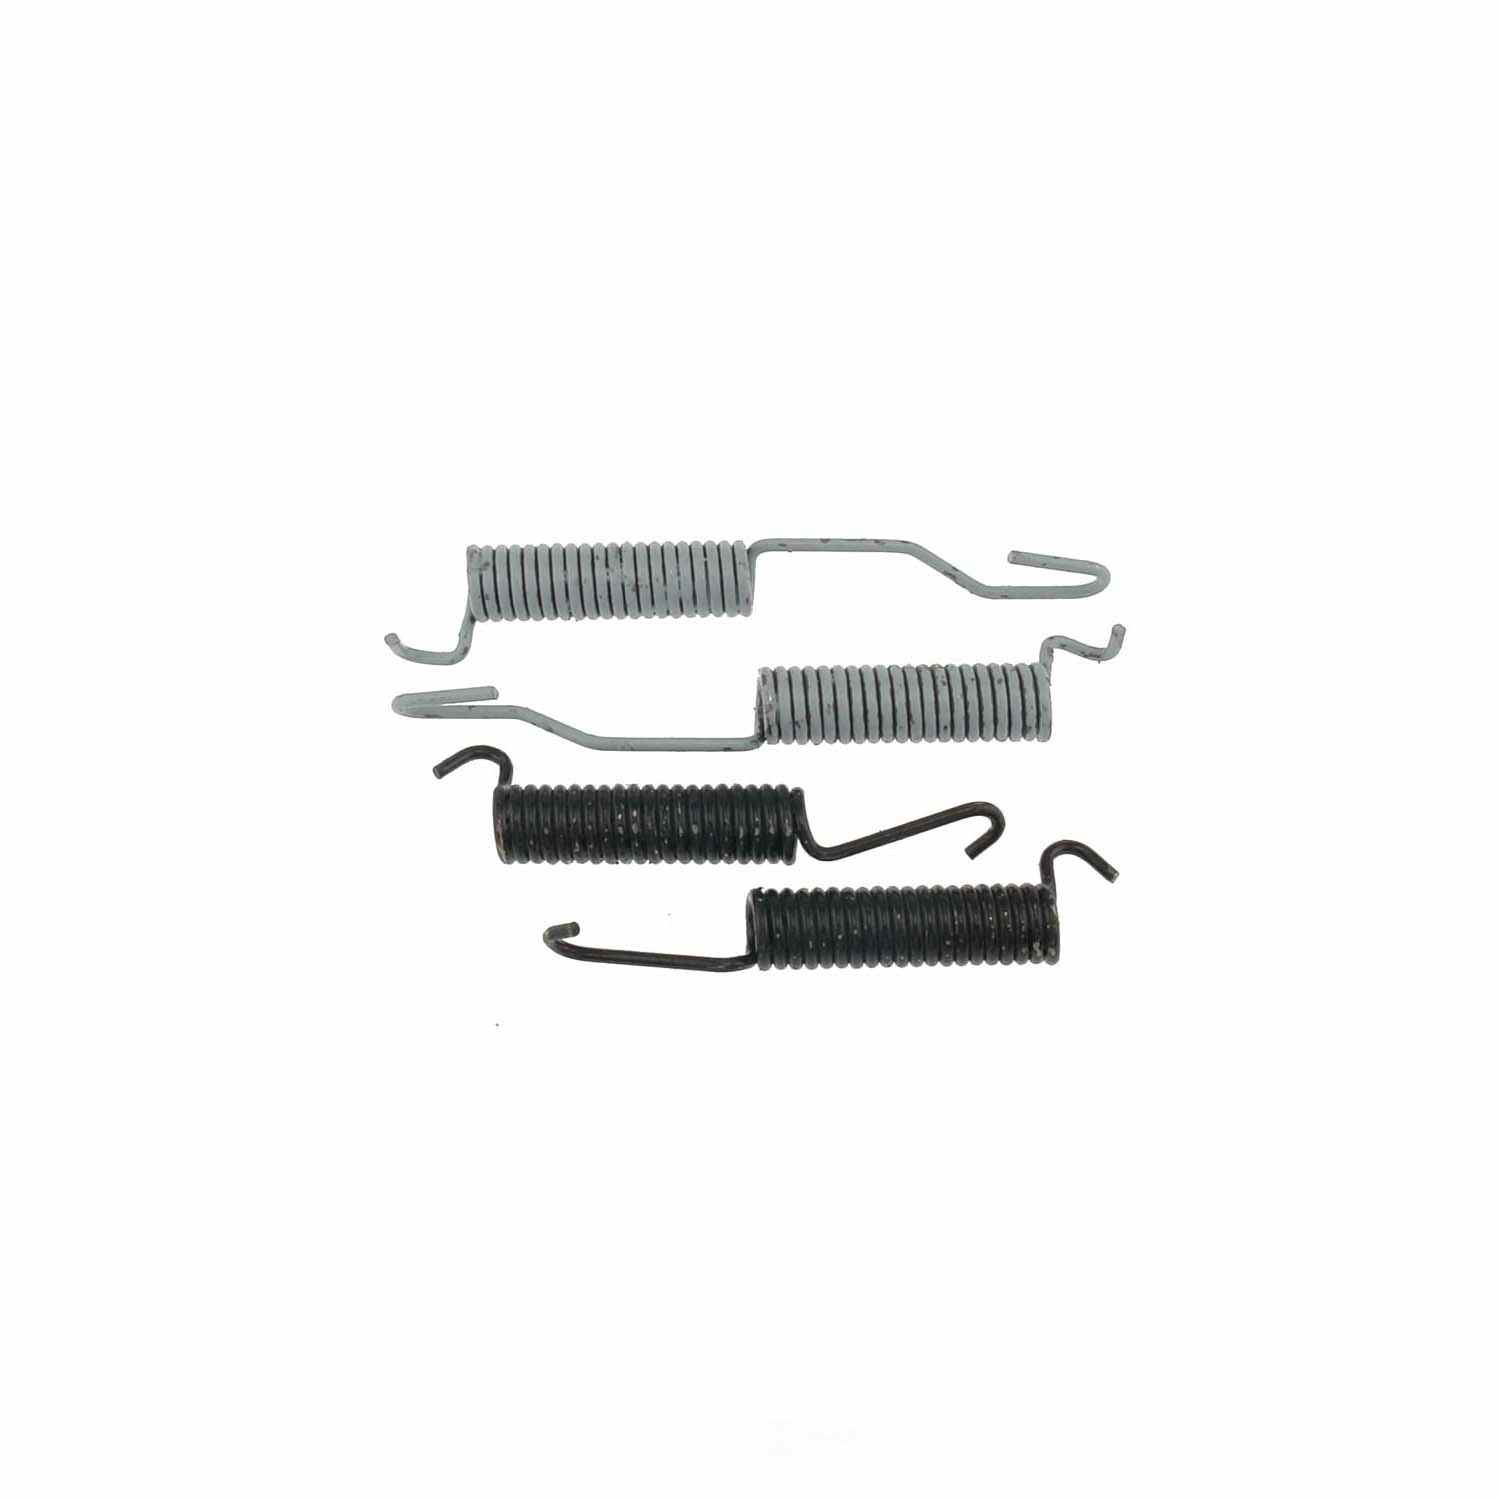 CARLSON QUALITY BRAKE PARTS - Drum Brake Shoe Return Spring - CRL H369